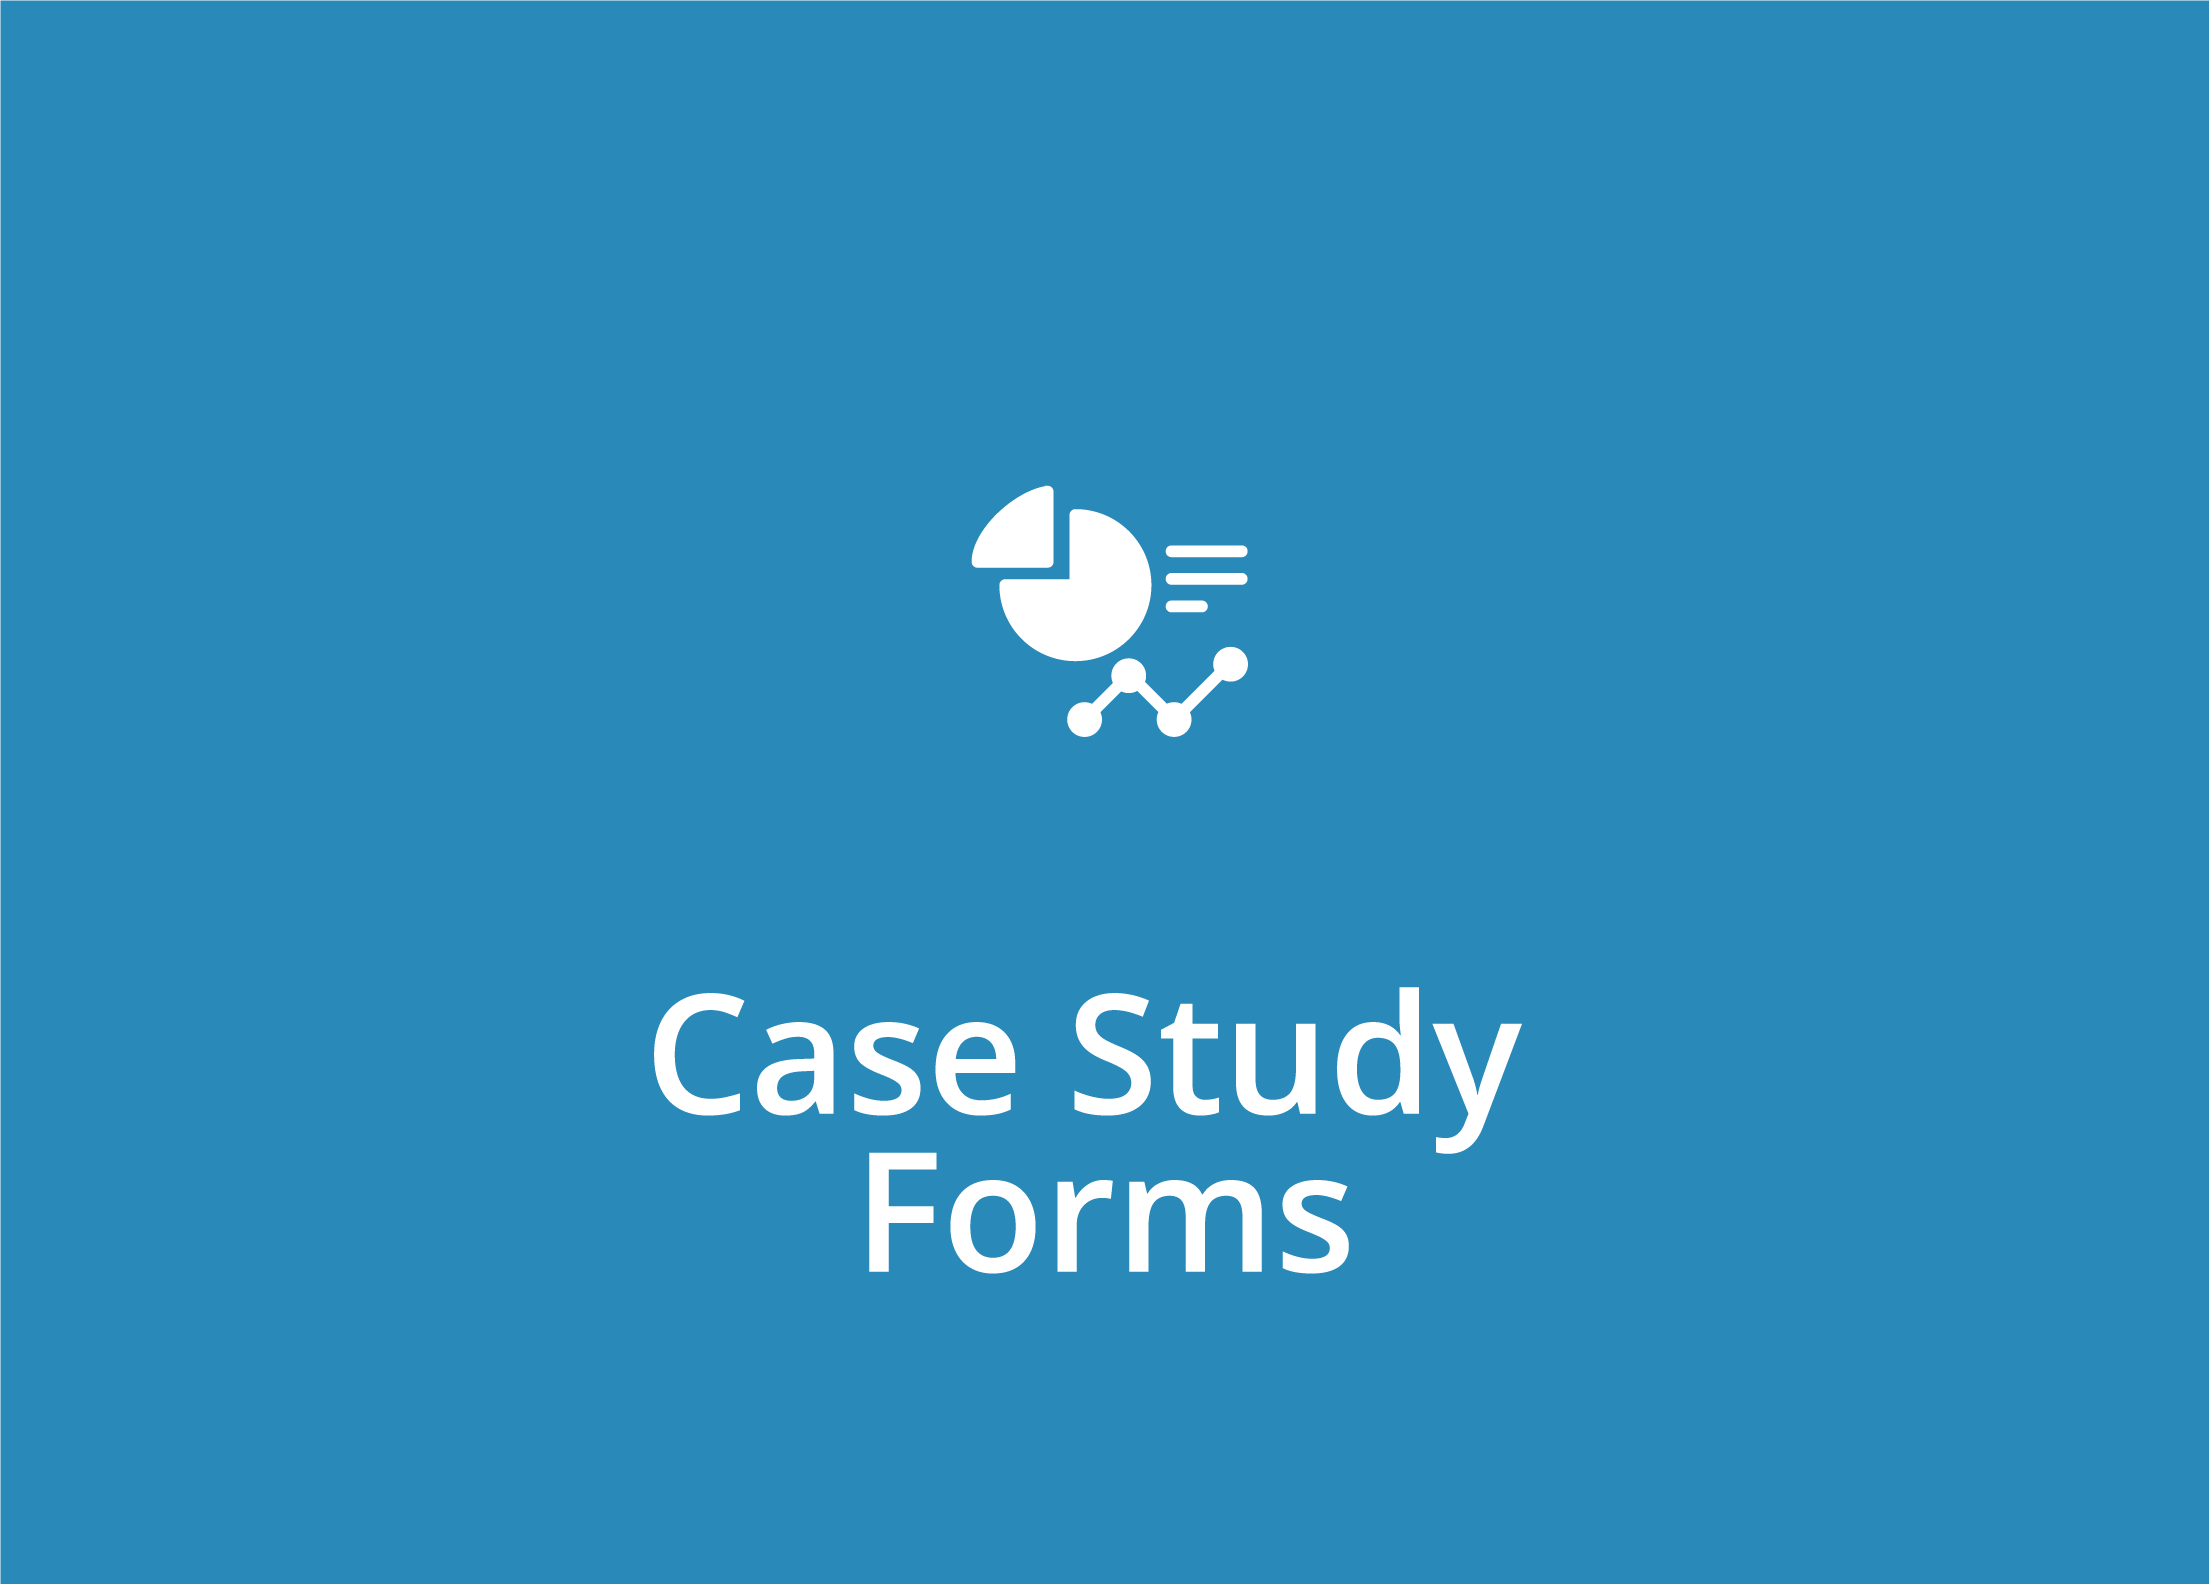 Case Study Forms